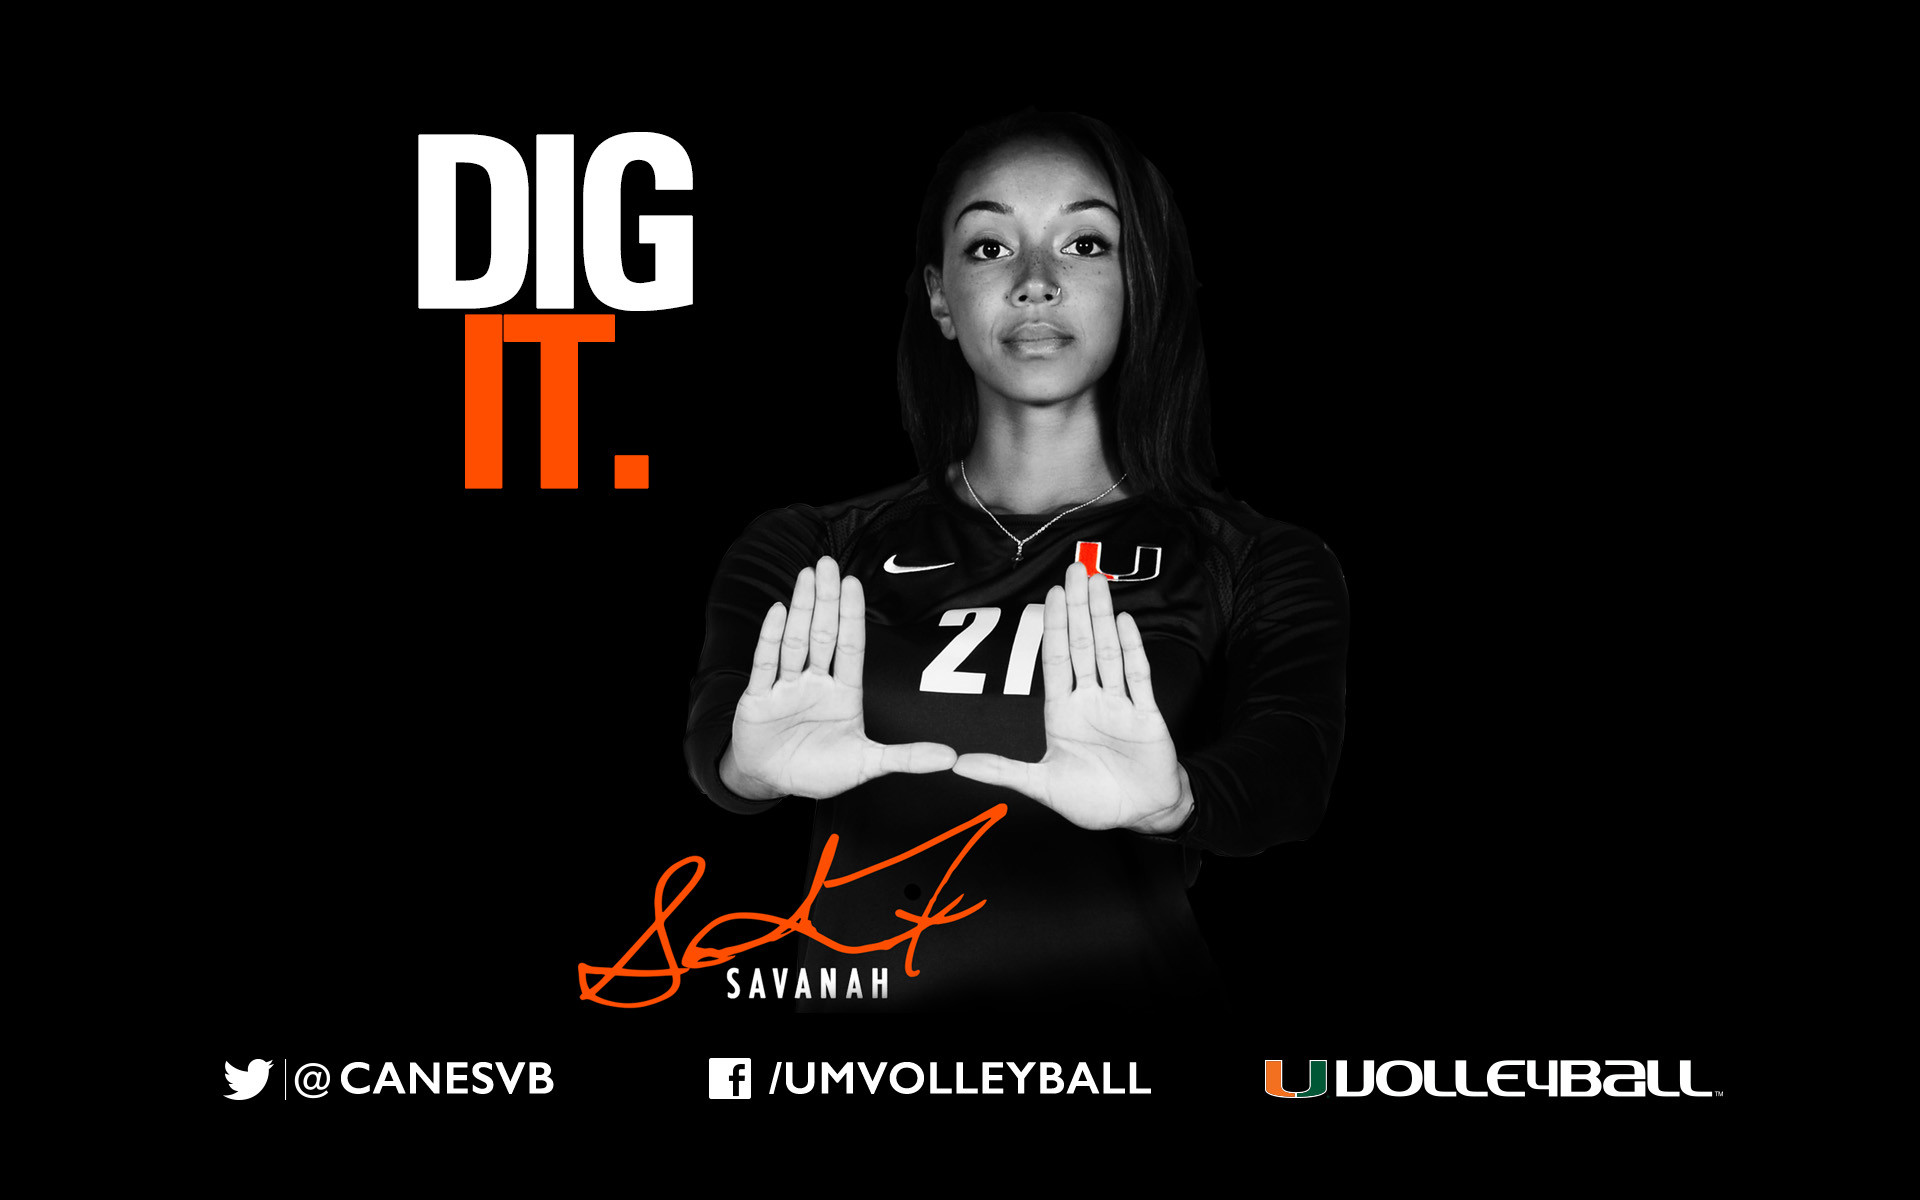 Miami Hurricanes HD Images.